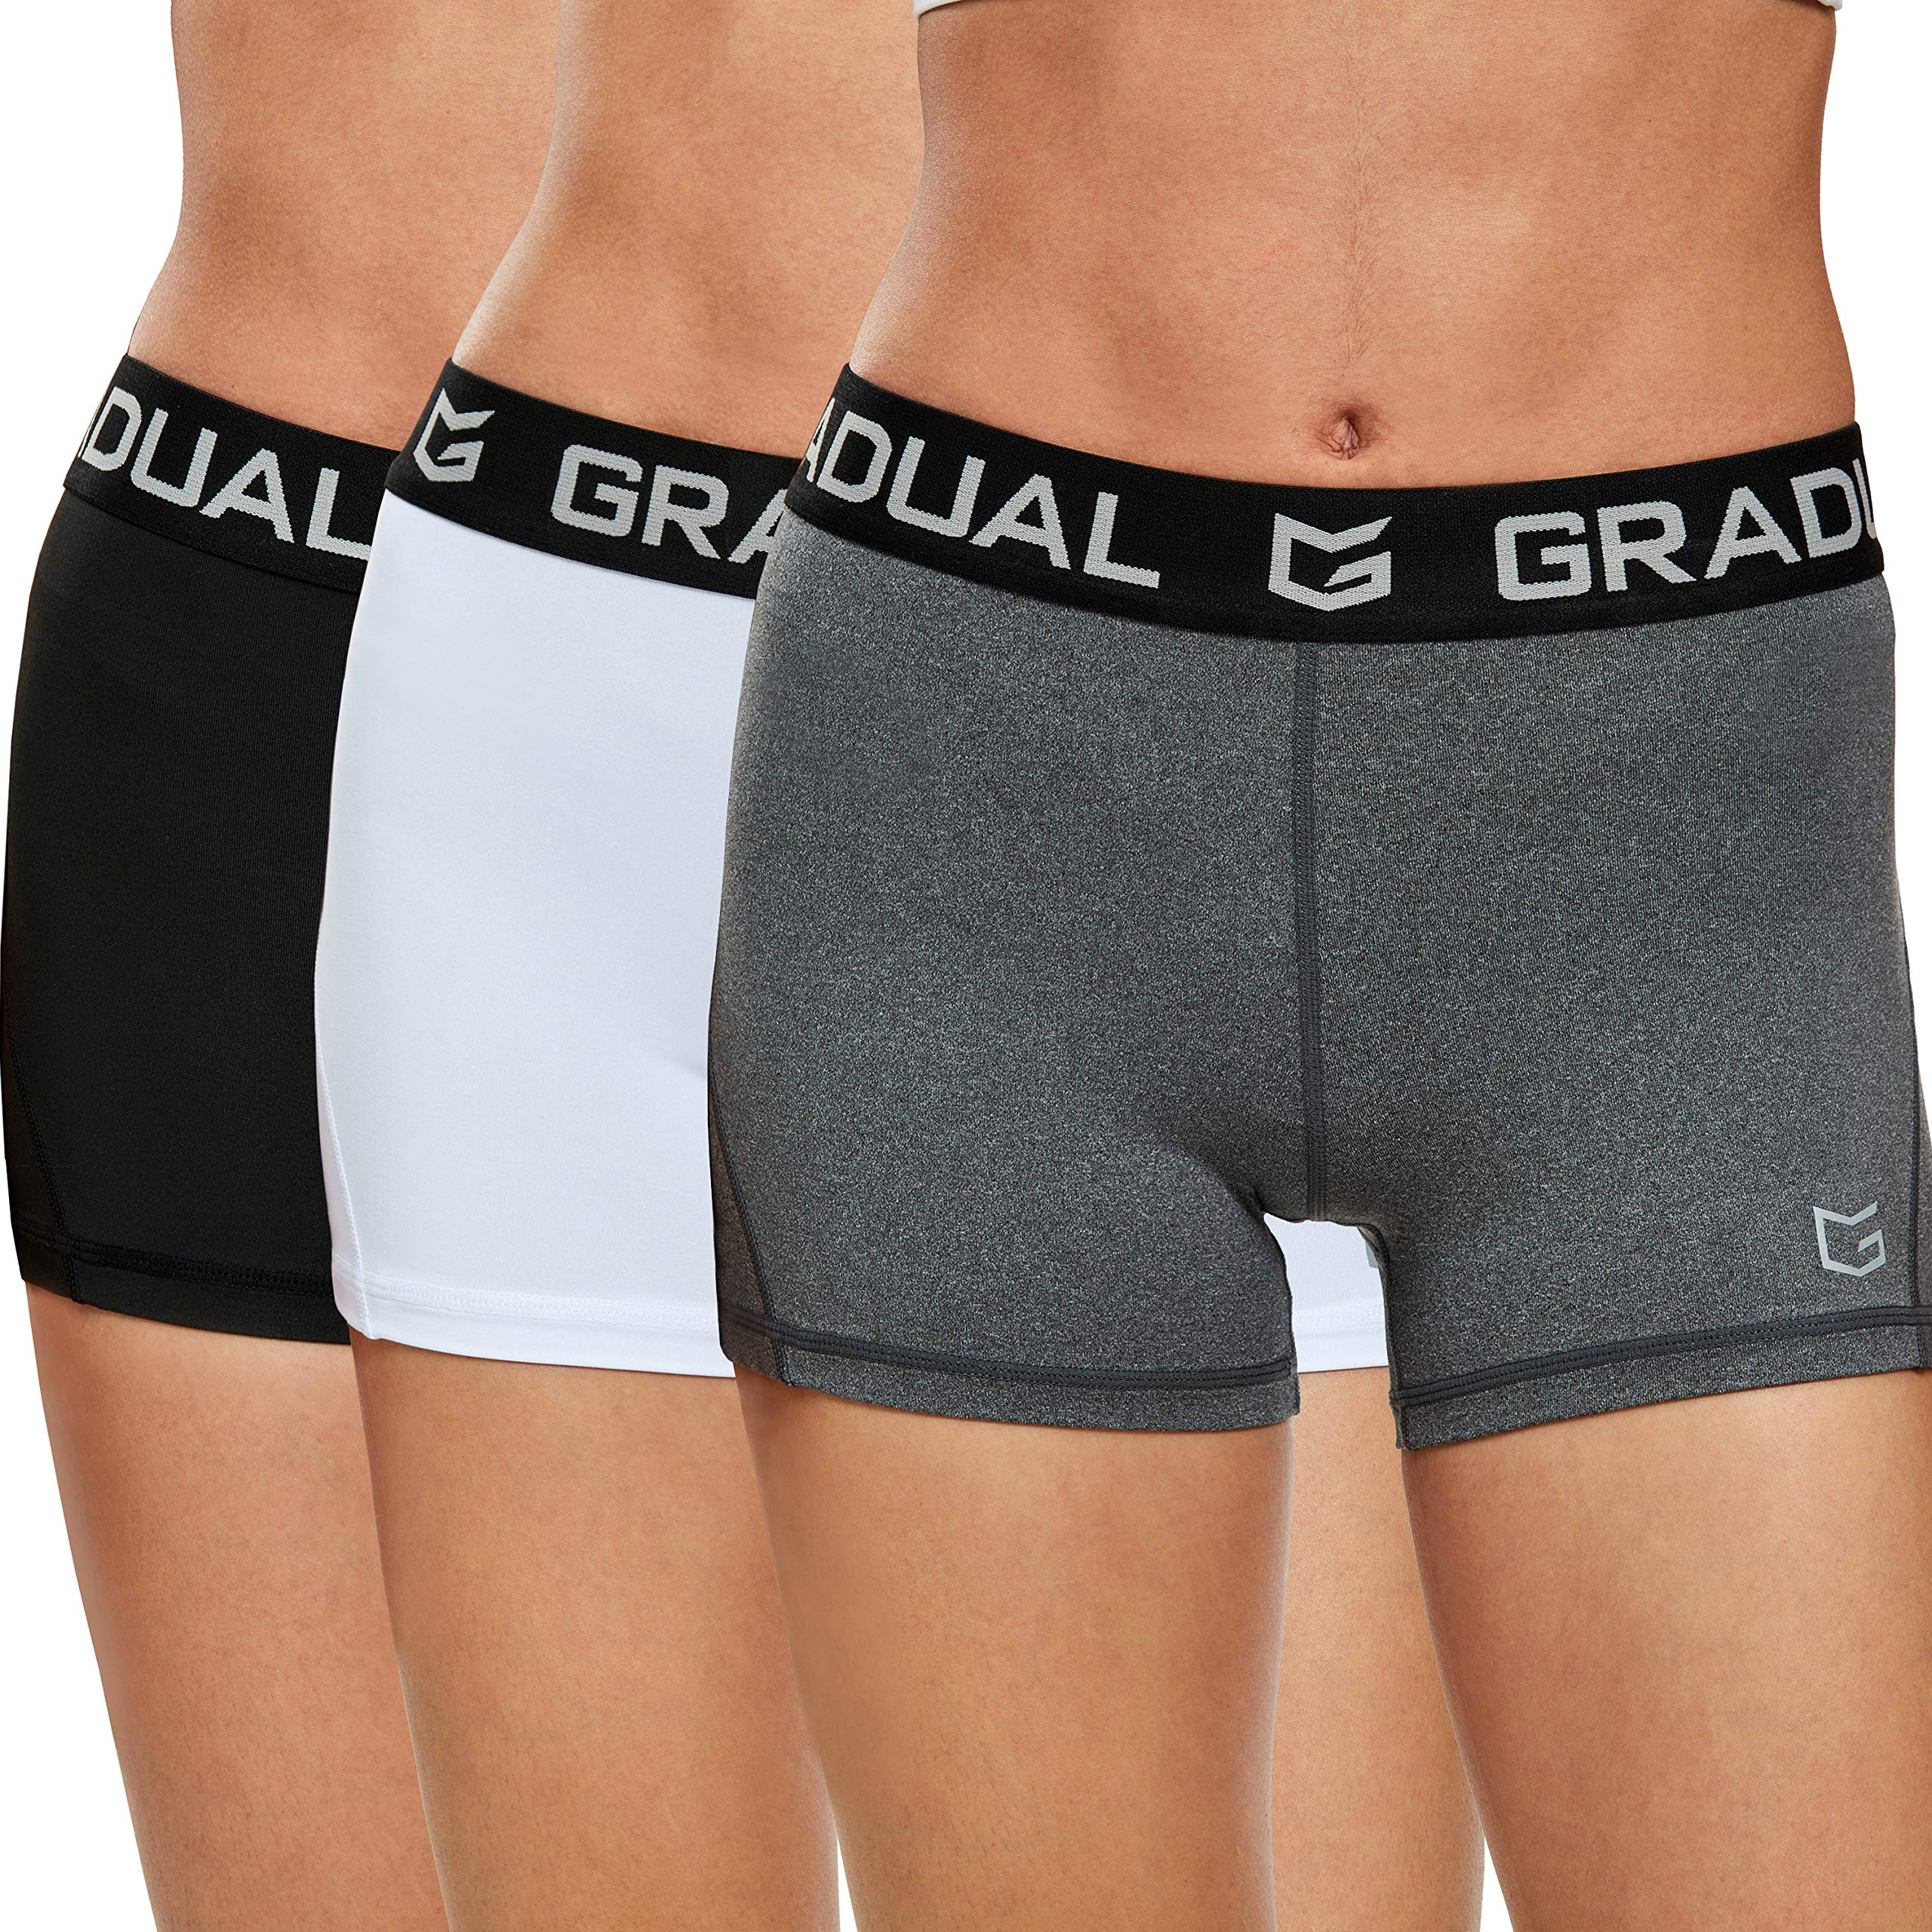 Women's Spandex Compression Volleyball Shorts 3'' Workout Pro Shorts for Women (3 Pack:Black/White/Gray, M) by G Gradual